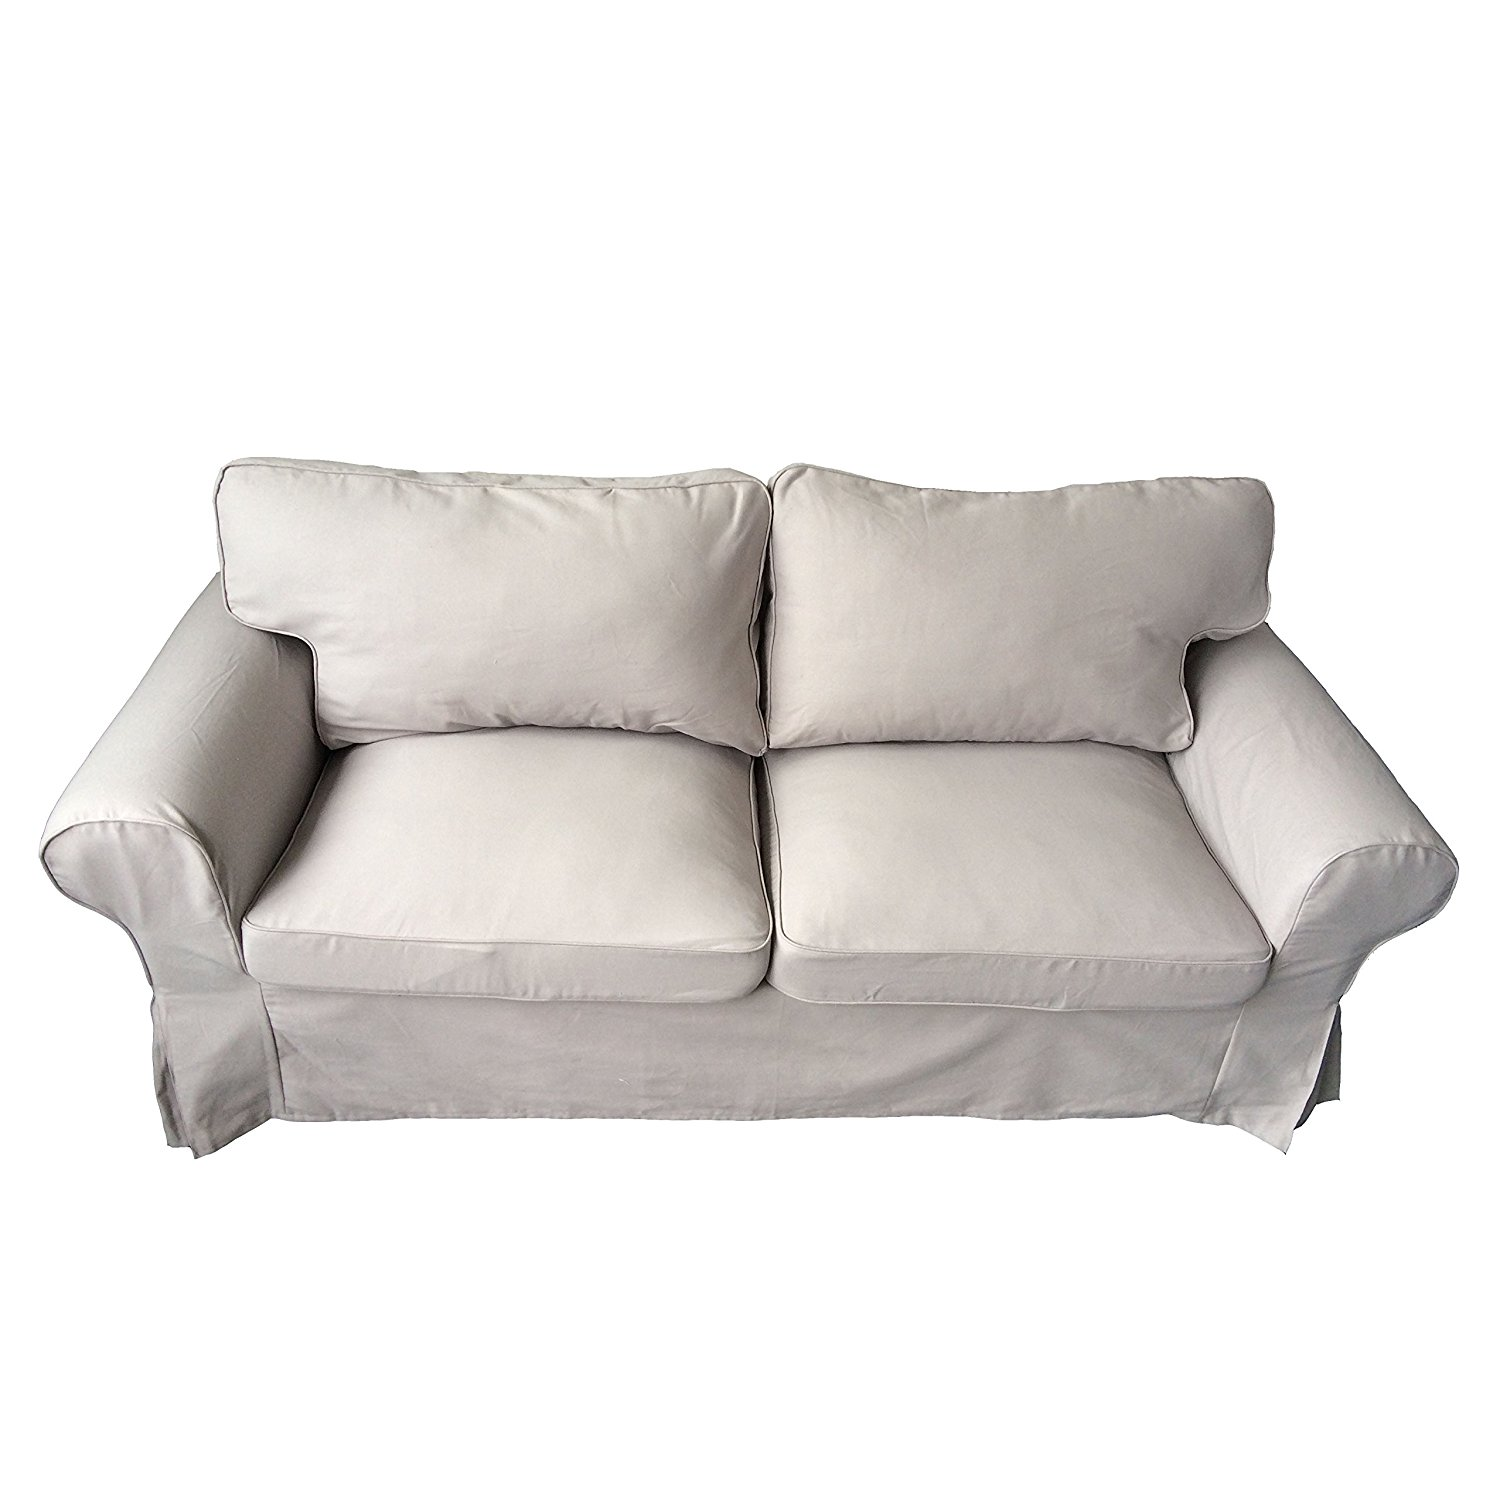 Buy Replace Cover For Ikea Ektorp Two Seat Sofa Bed